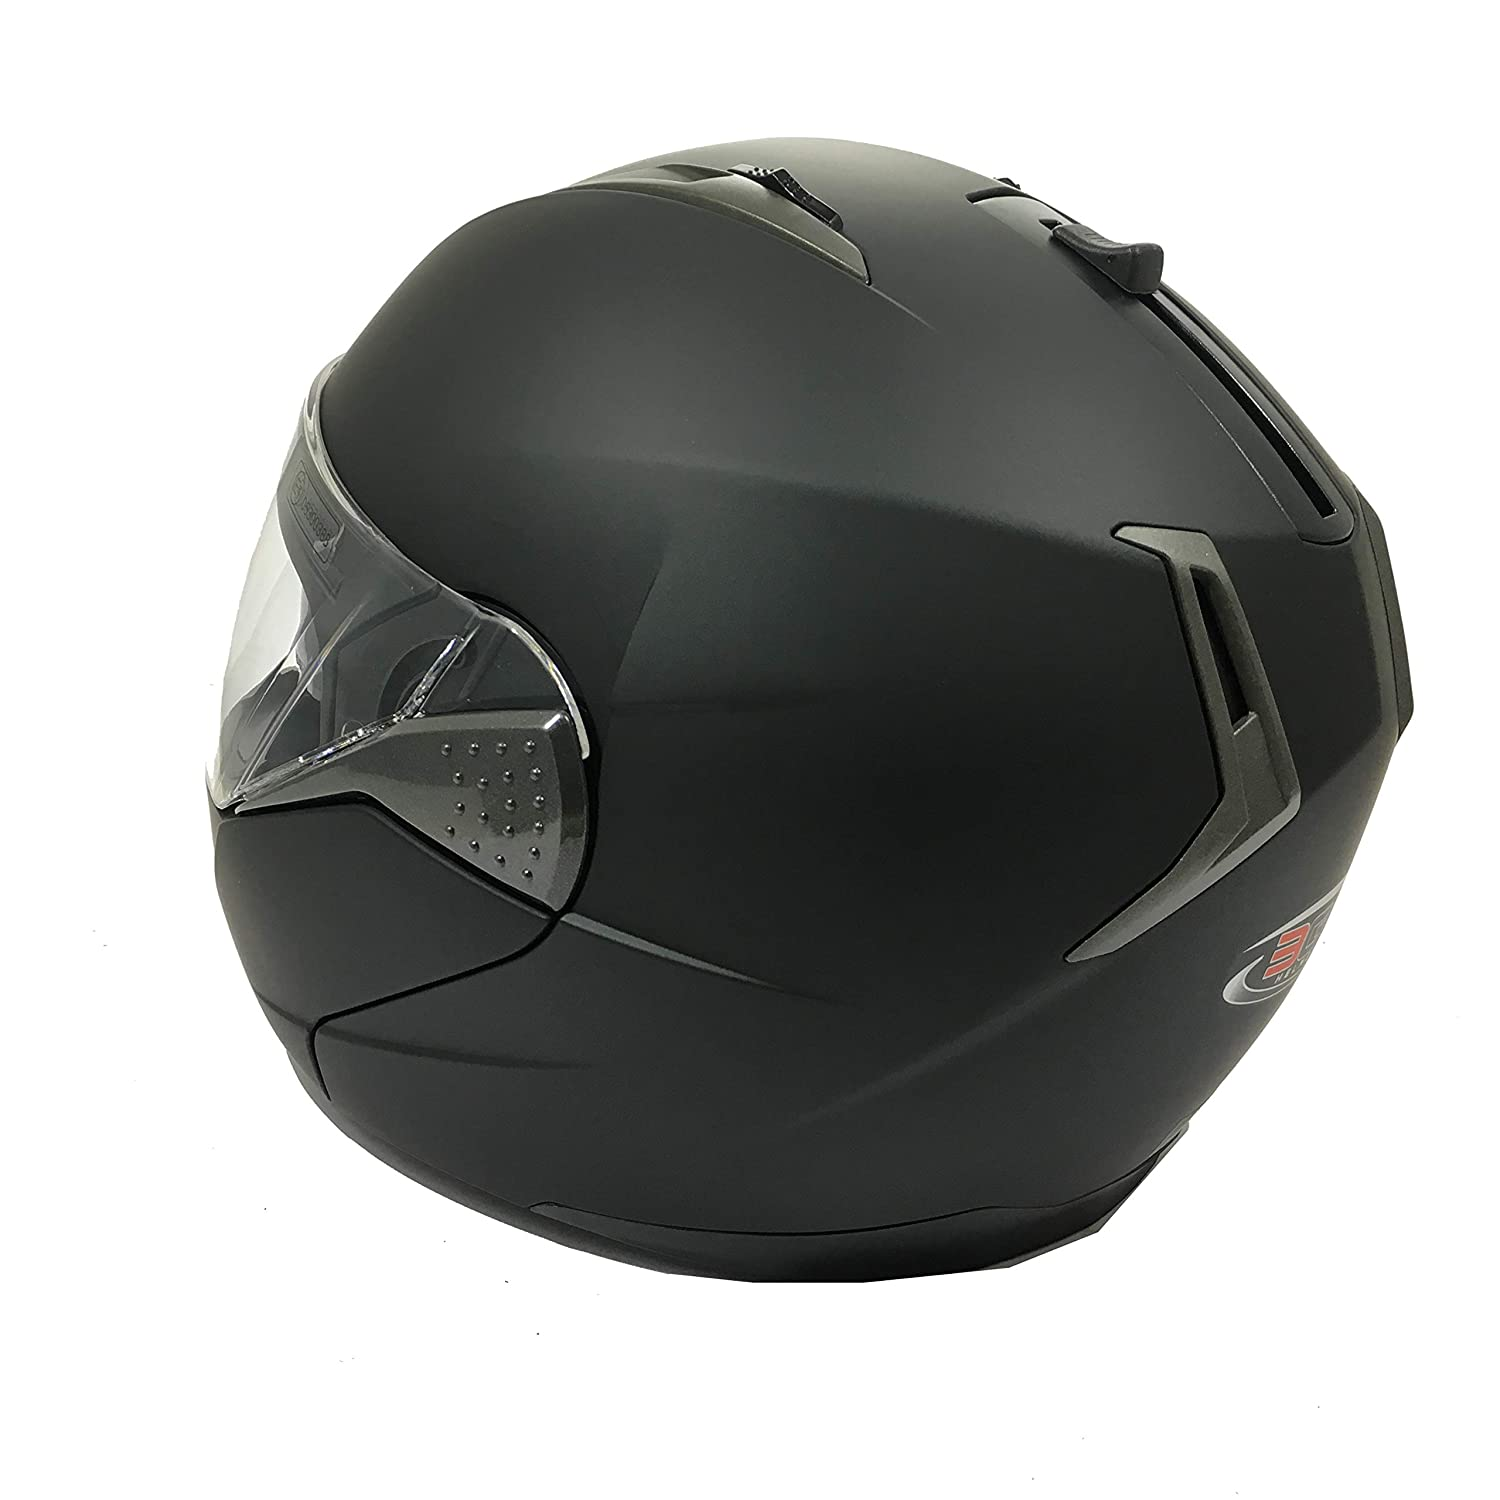 3GO-E335 Moto Integral Modular Urban DOUBCASQUE MODULABLE 3GO-E335 Moto FUL Face Double VISI/ÈRE Touring Cruiser Sports Flip-UP ECE Homologue Casque Noir Mat 59-60 CM L